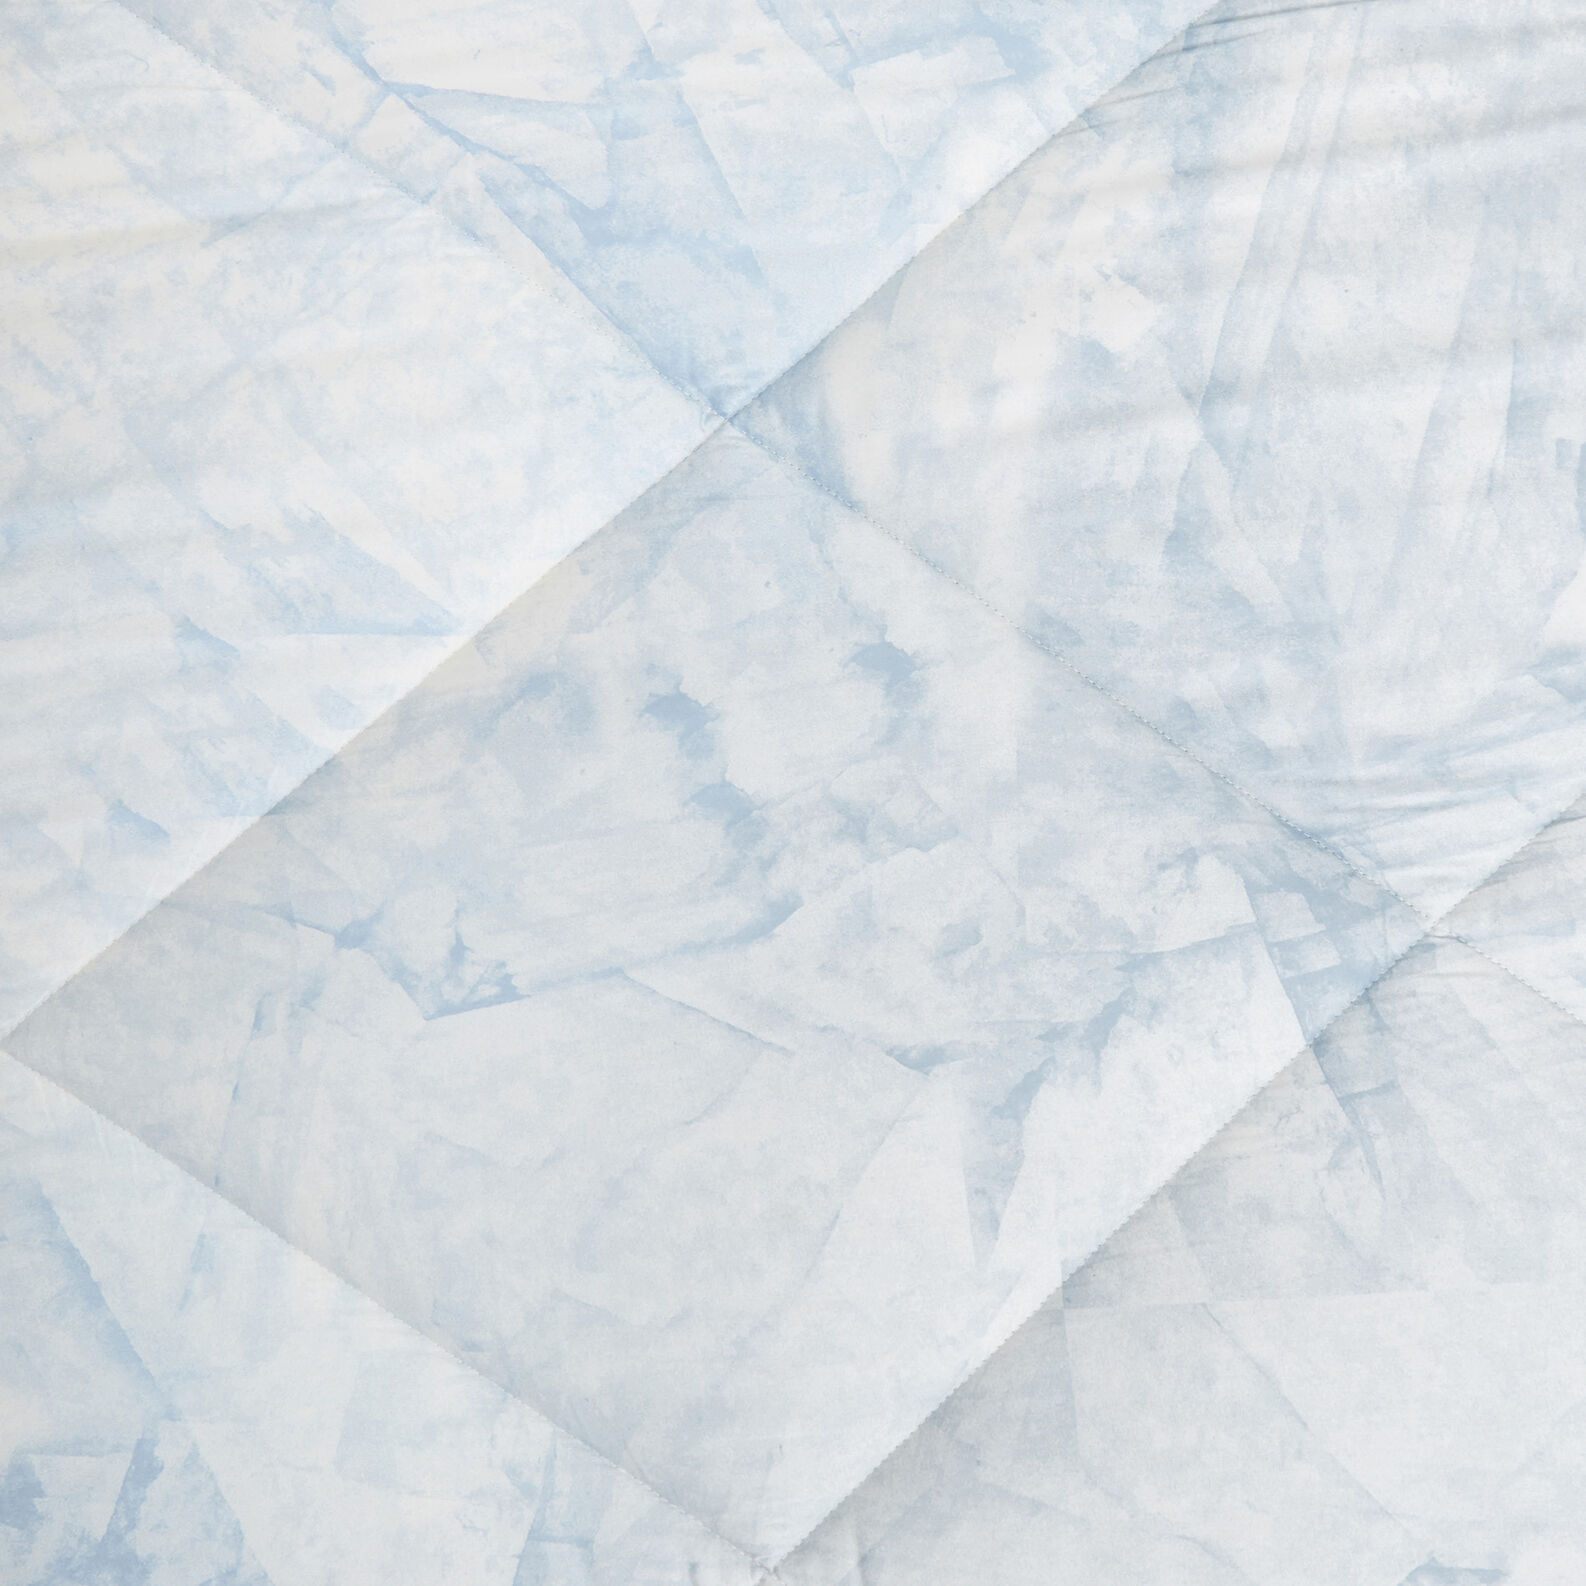 Cotton satin quilt with marble pattern